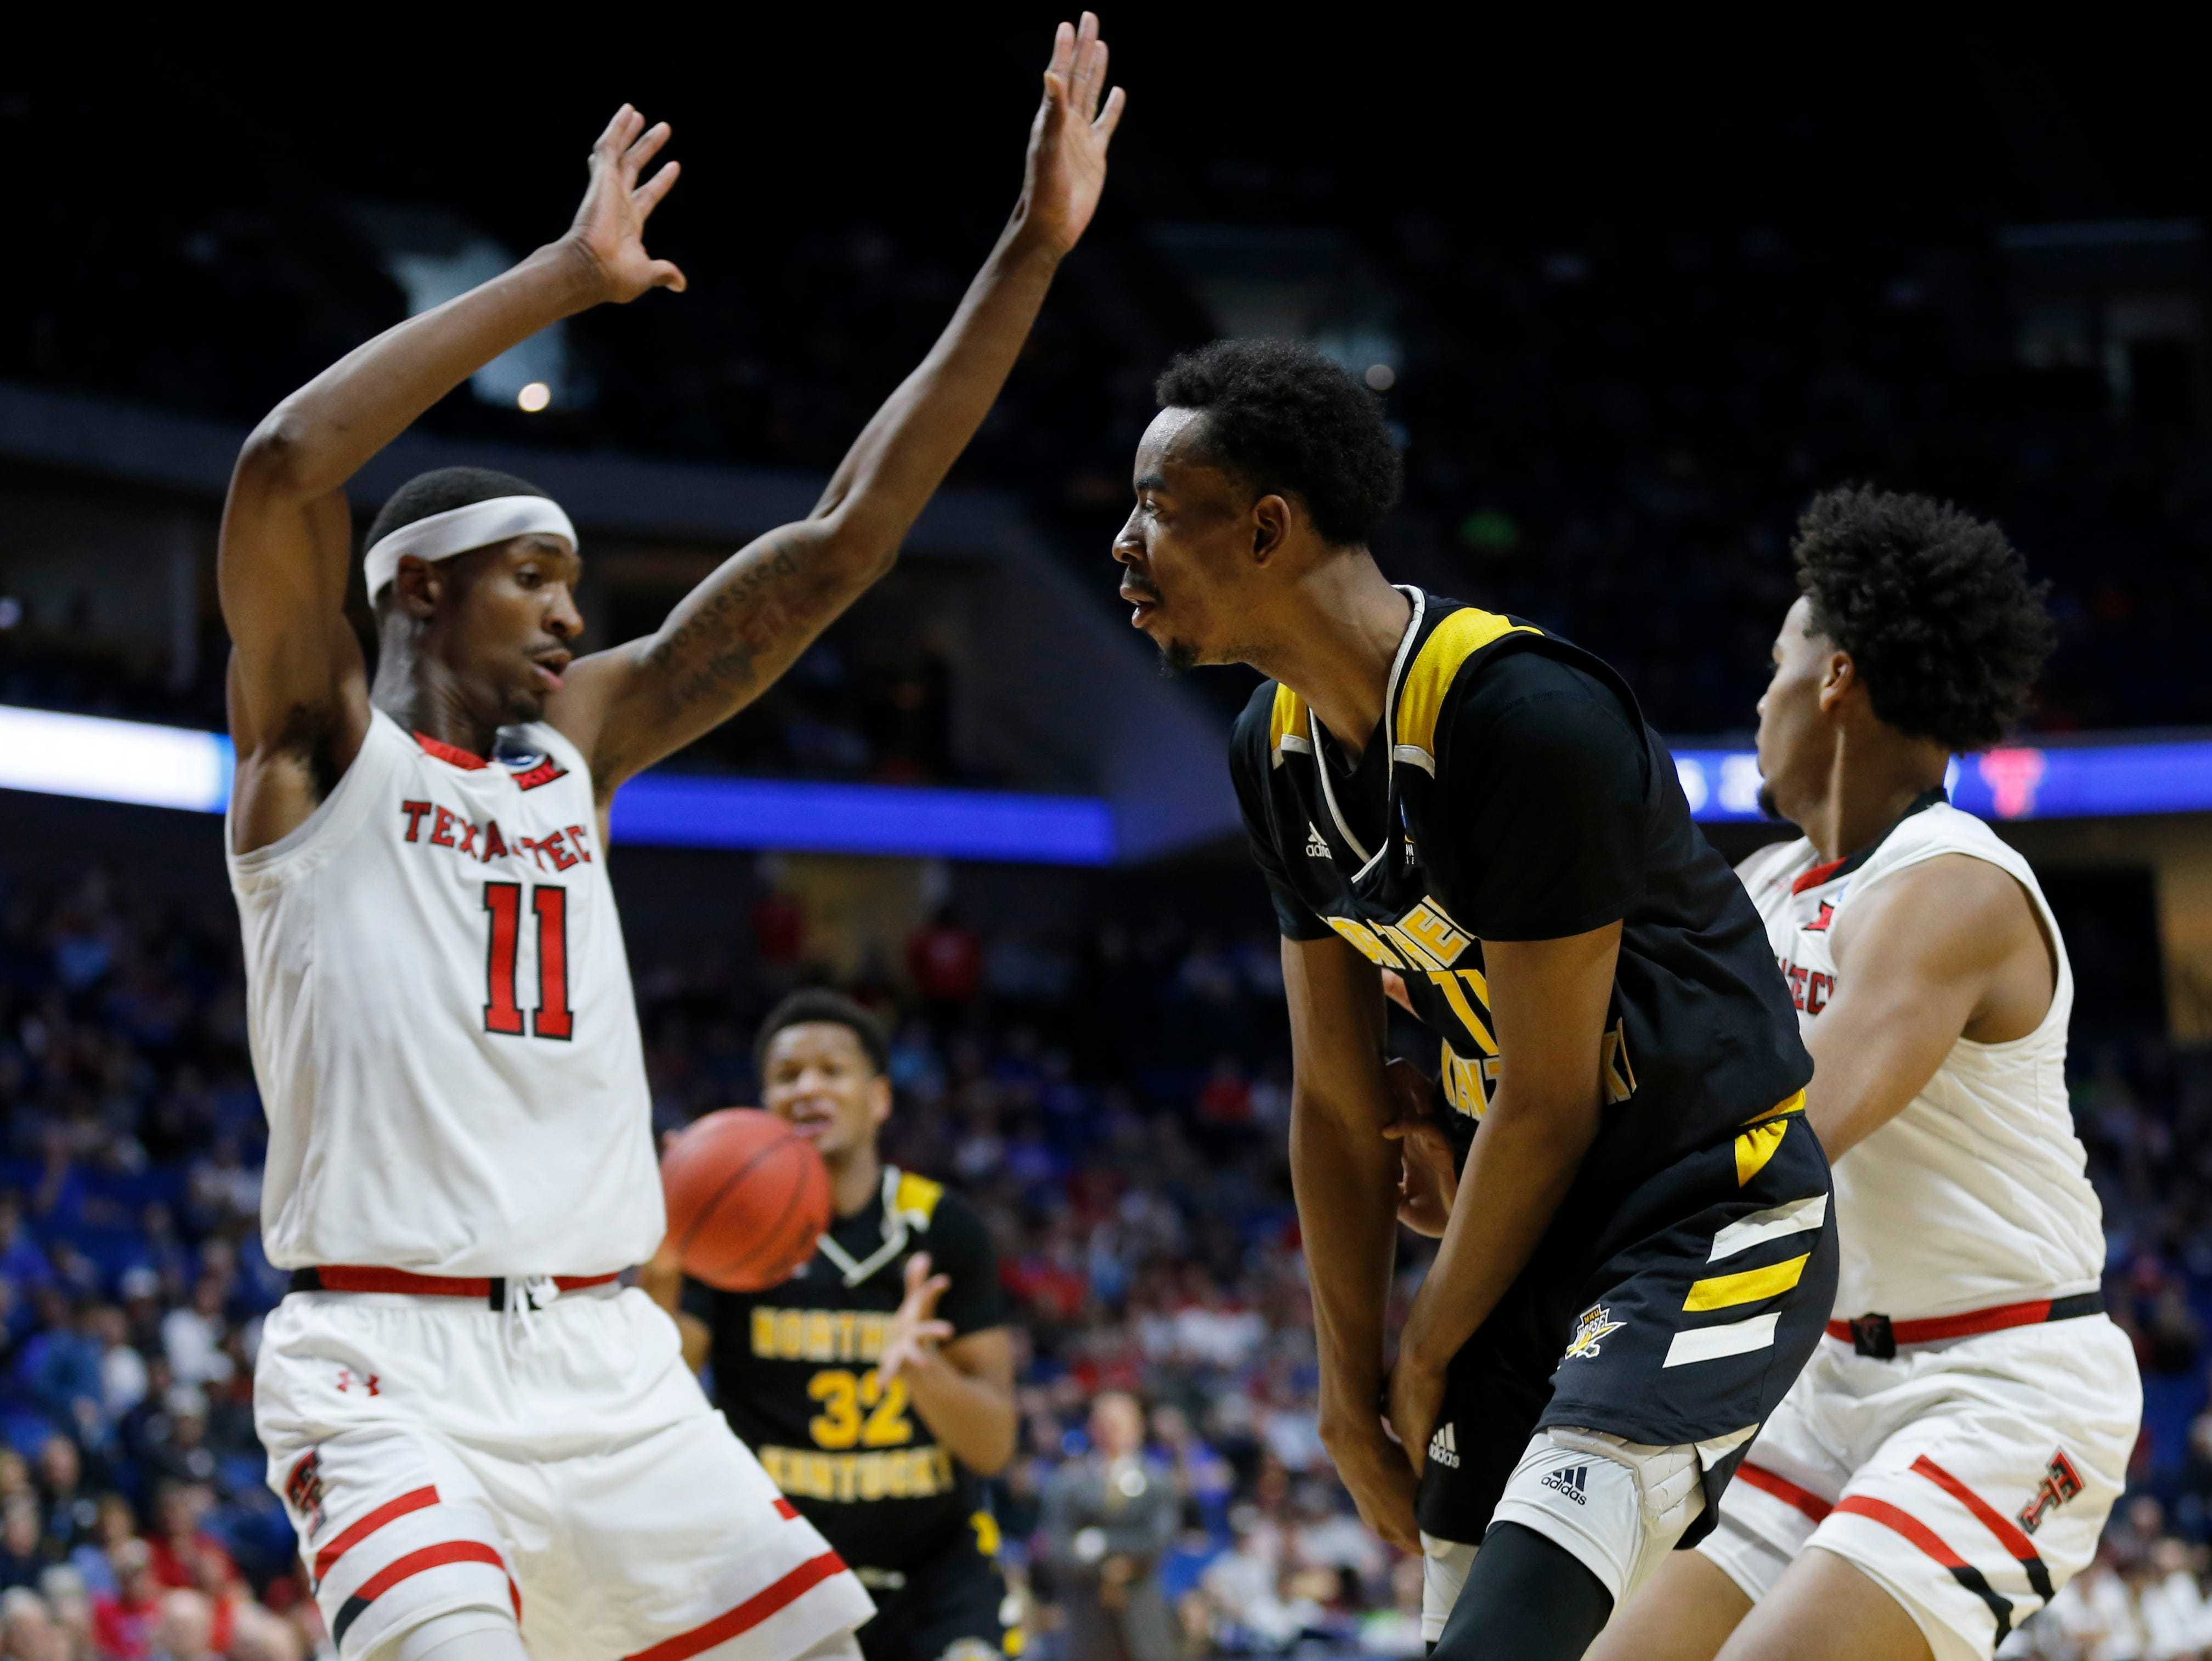 Northern Kentucky Norse guard Jalen Tate (11) throws a no-look pass to forward Dantez Walton (32) in the first half of the NCAA Tournament First Round game between the 14-seeded Northern Kentucky Norse and the 3-seeded Texas Tech Red Raiders the BOK Center in downtown Tulsa on Friday, March 22, 2019. Texas Tech led 30-26 at halftime.